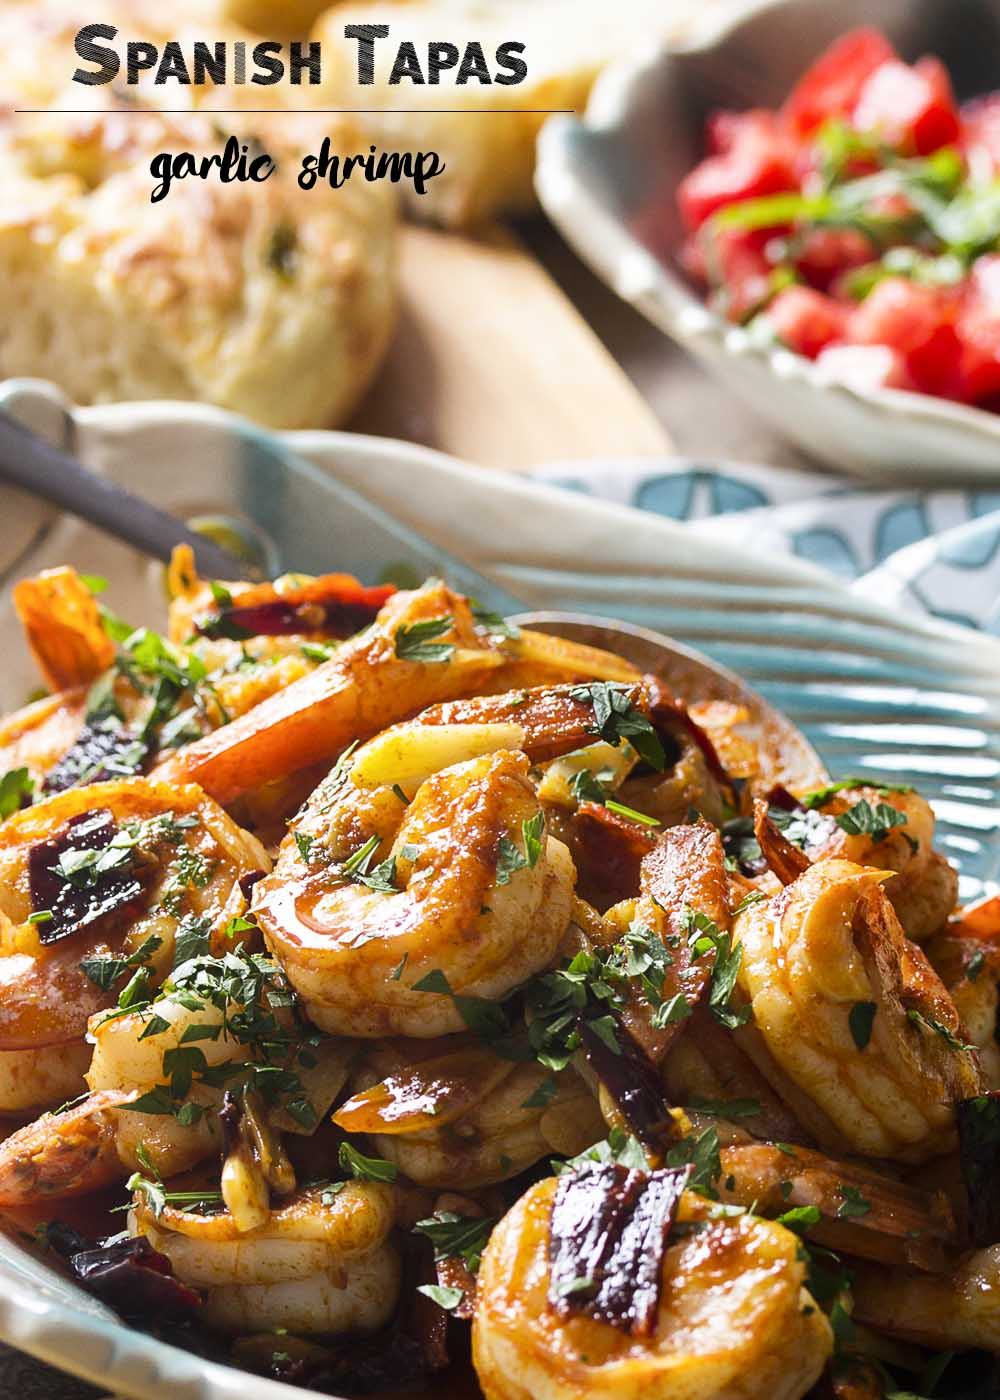 Plump and juicy shrimp, soft sliced garlic, and sweet and smoky paprika combine in this classic tapas recipe for Spanish garlic shrimp. Quick and easy! Make sure you have plenty of bread to soak up the flavorful olive oil!   justalittlebitofbacon.com